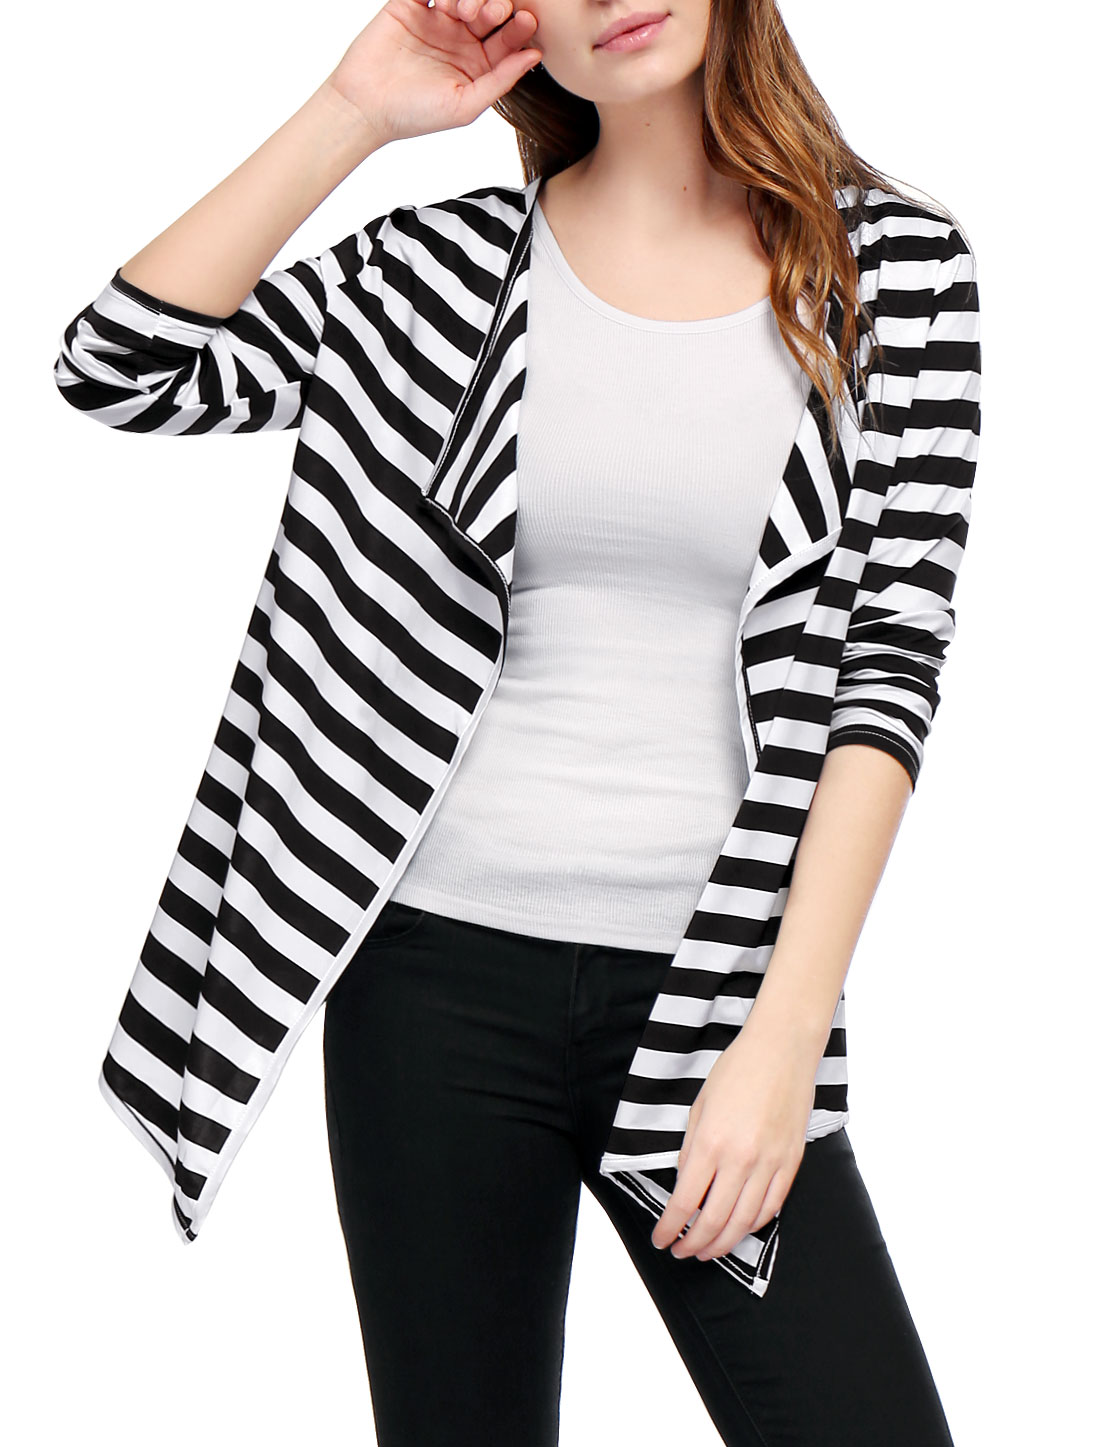 Woman NEW Black White Stripes Pattern Draped Front Casual Cardigan XL